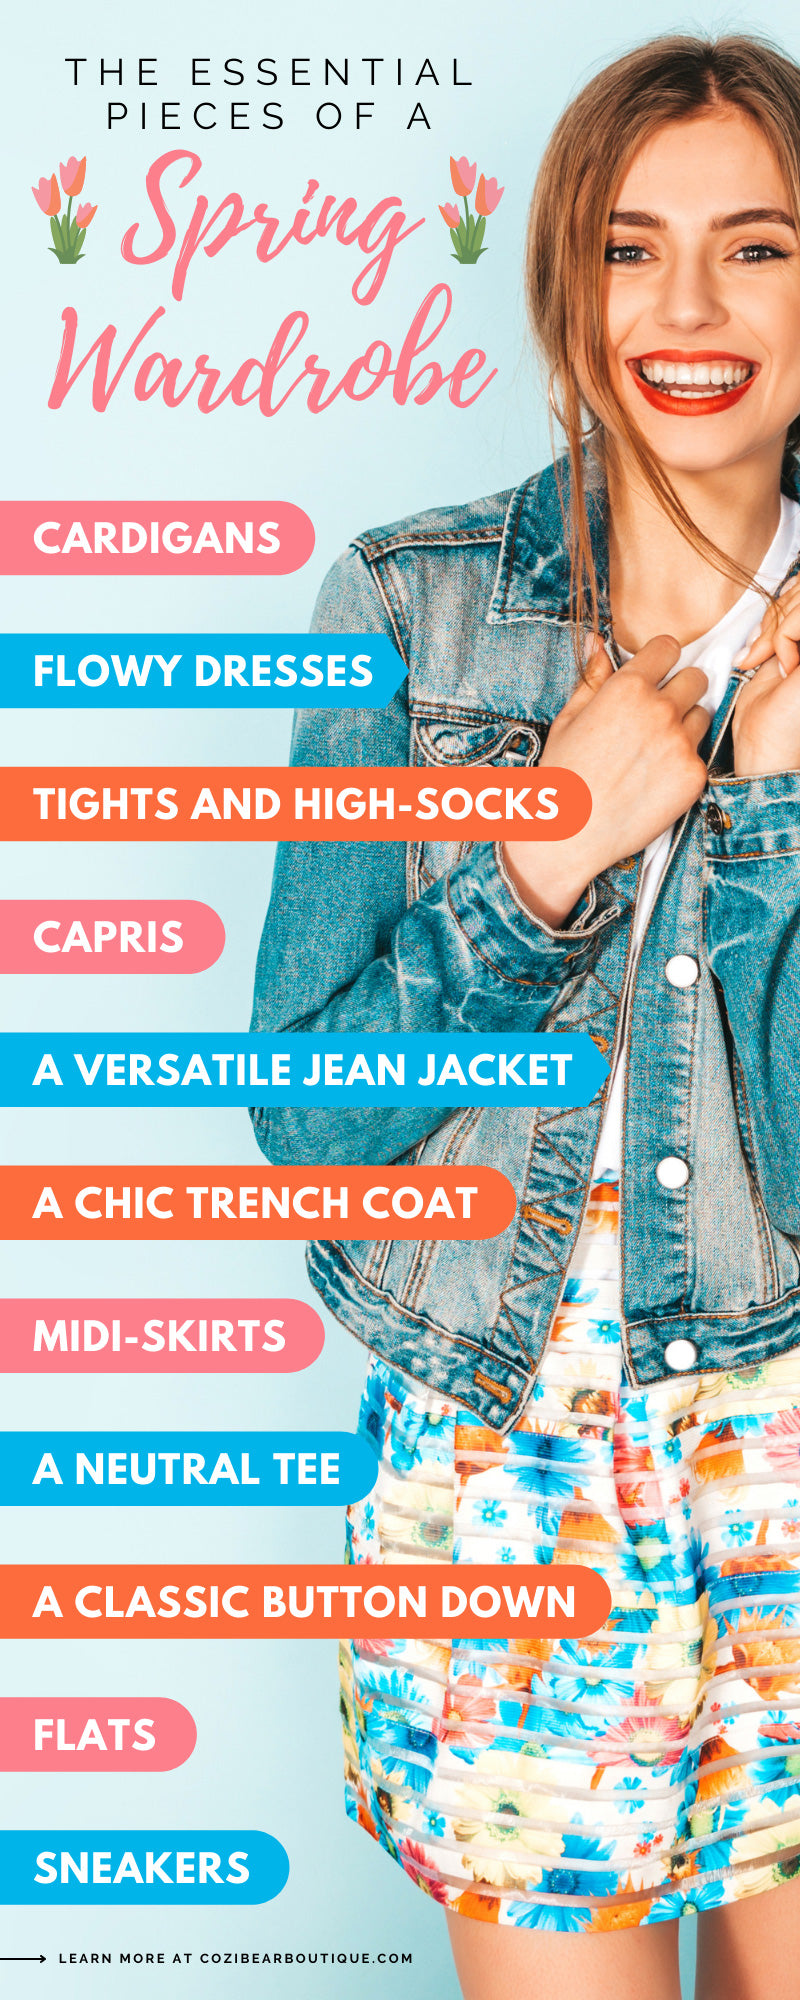 The Essential Pieces of a Spring Wardrobe